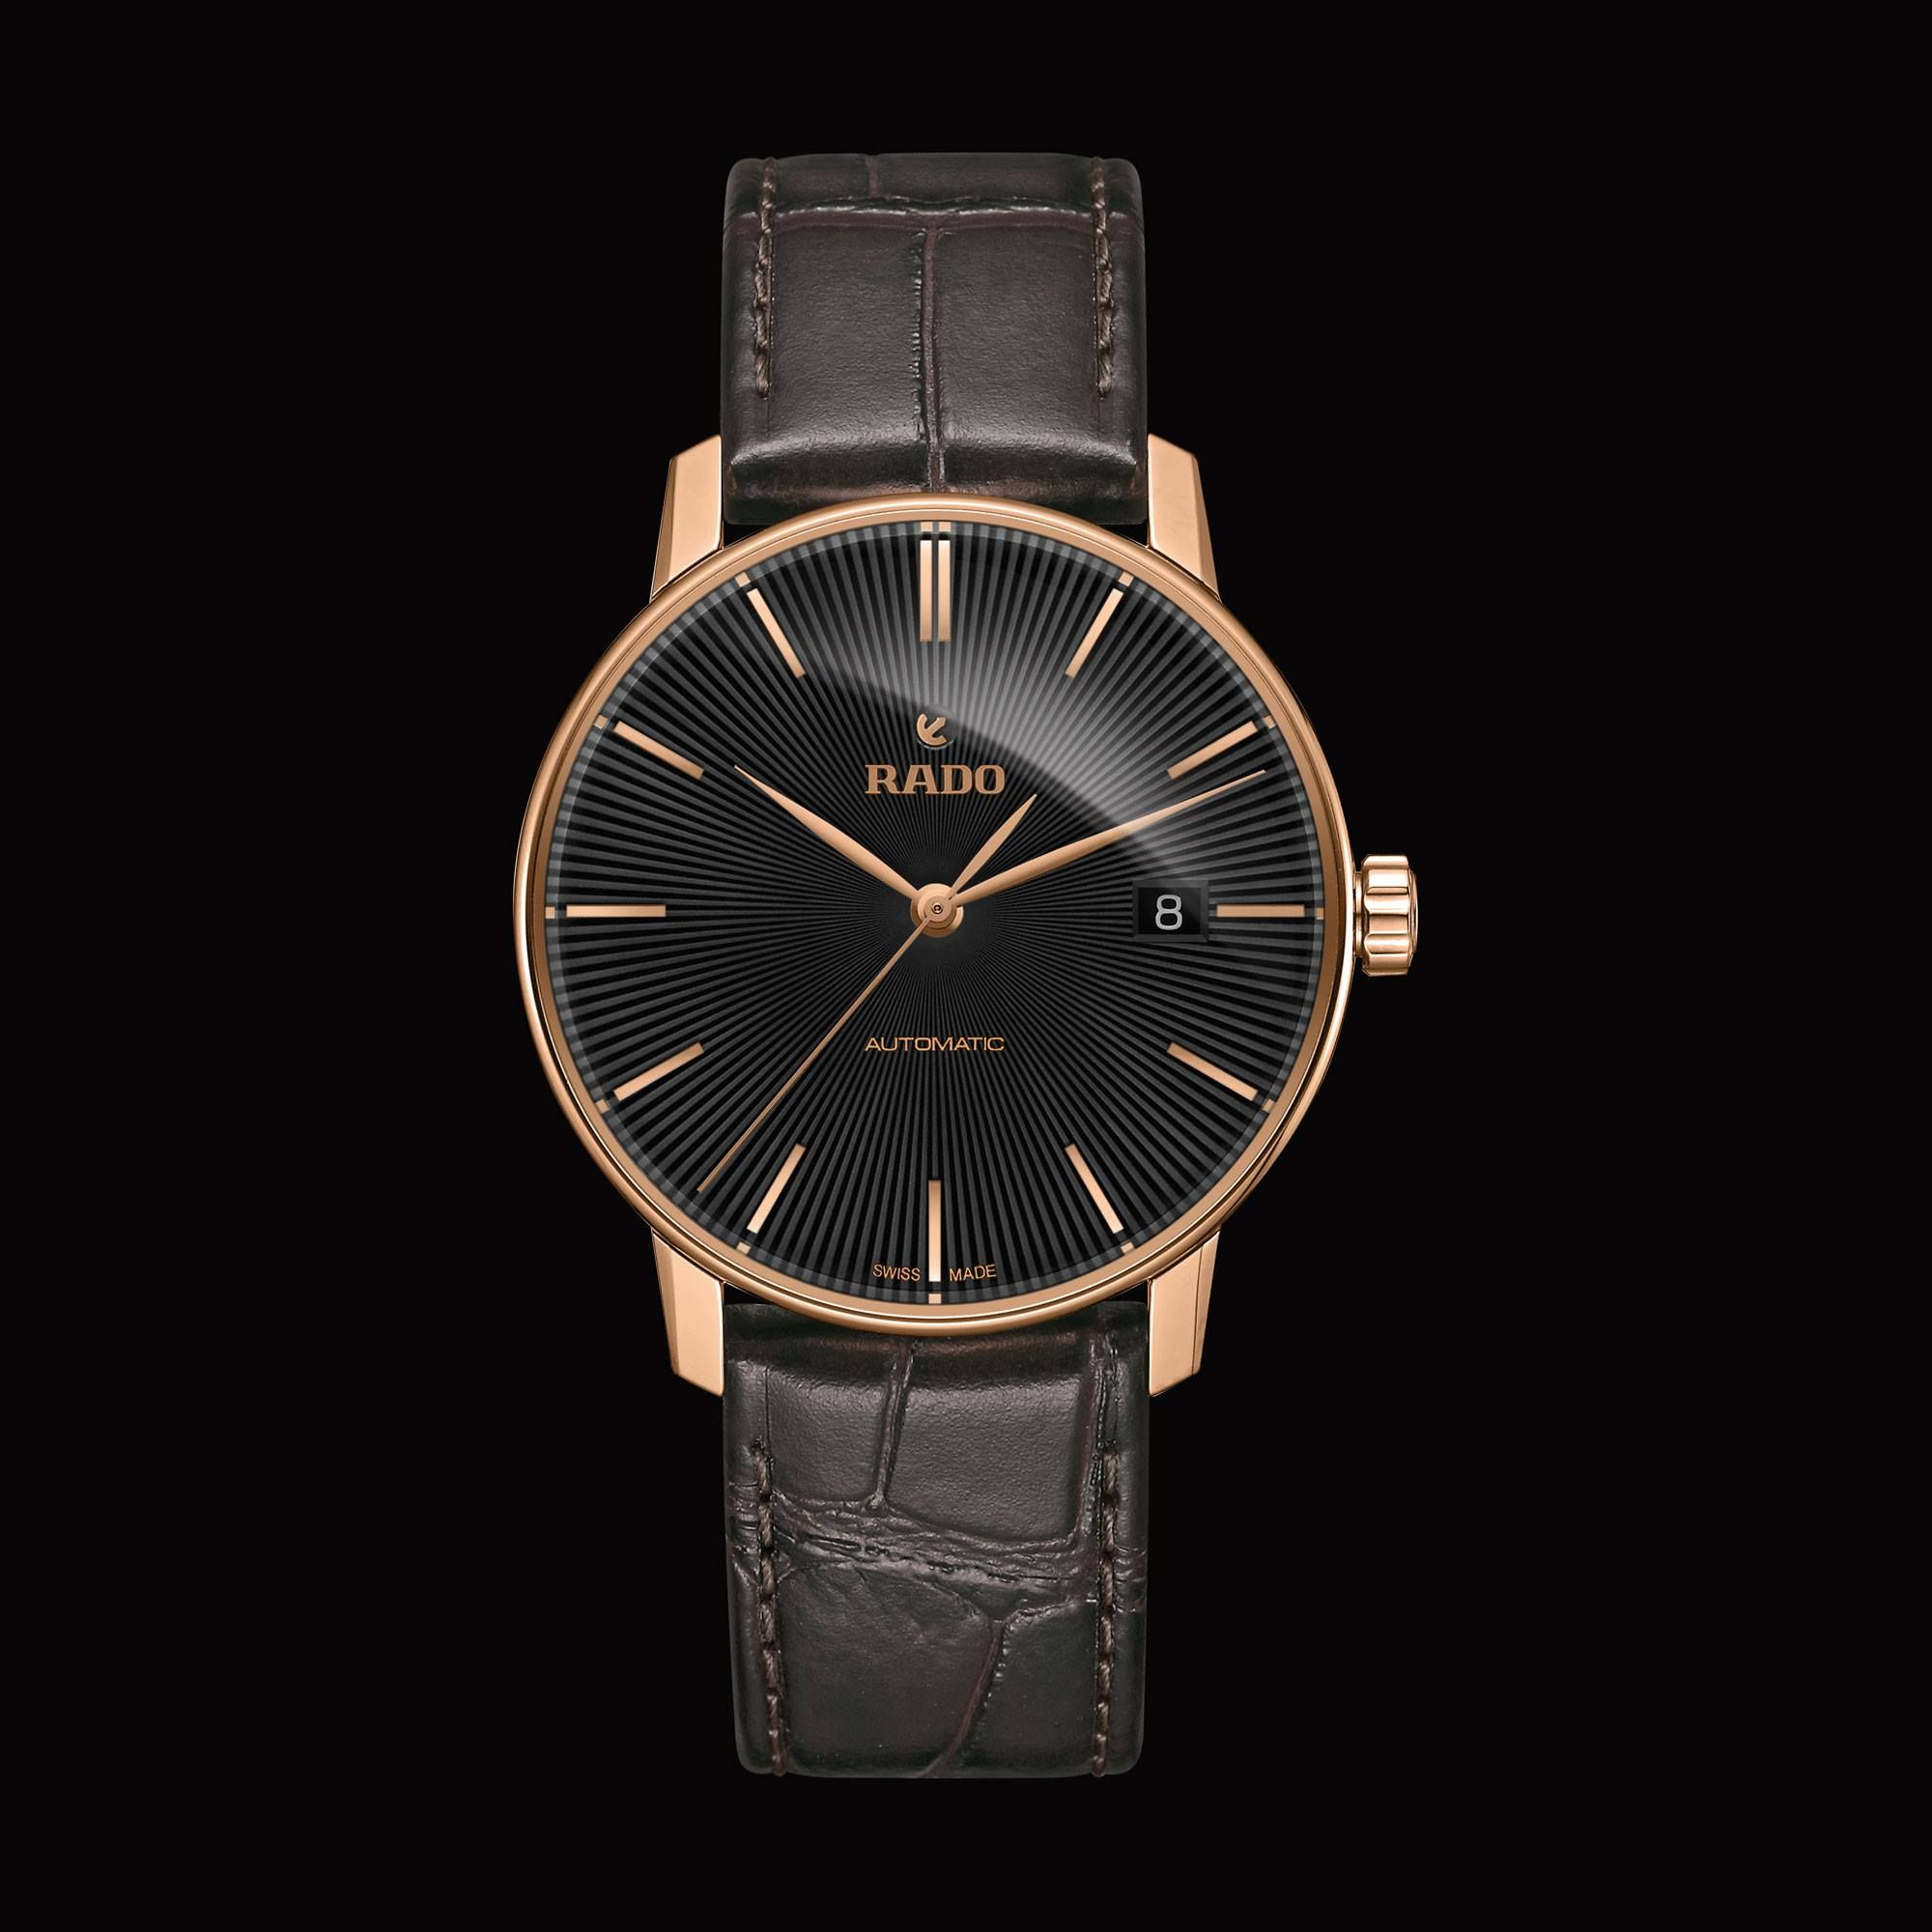 Rado Coupole Classic Automatic 1250 Watches Watches Rado Watches For Men